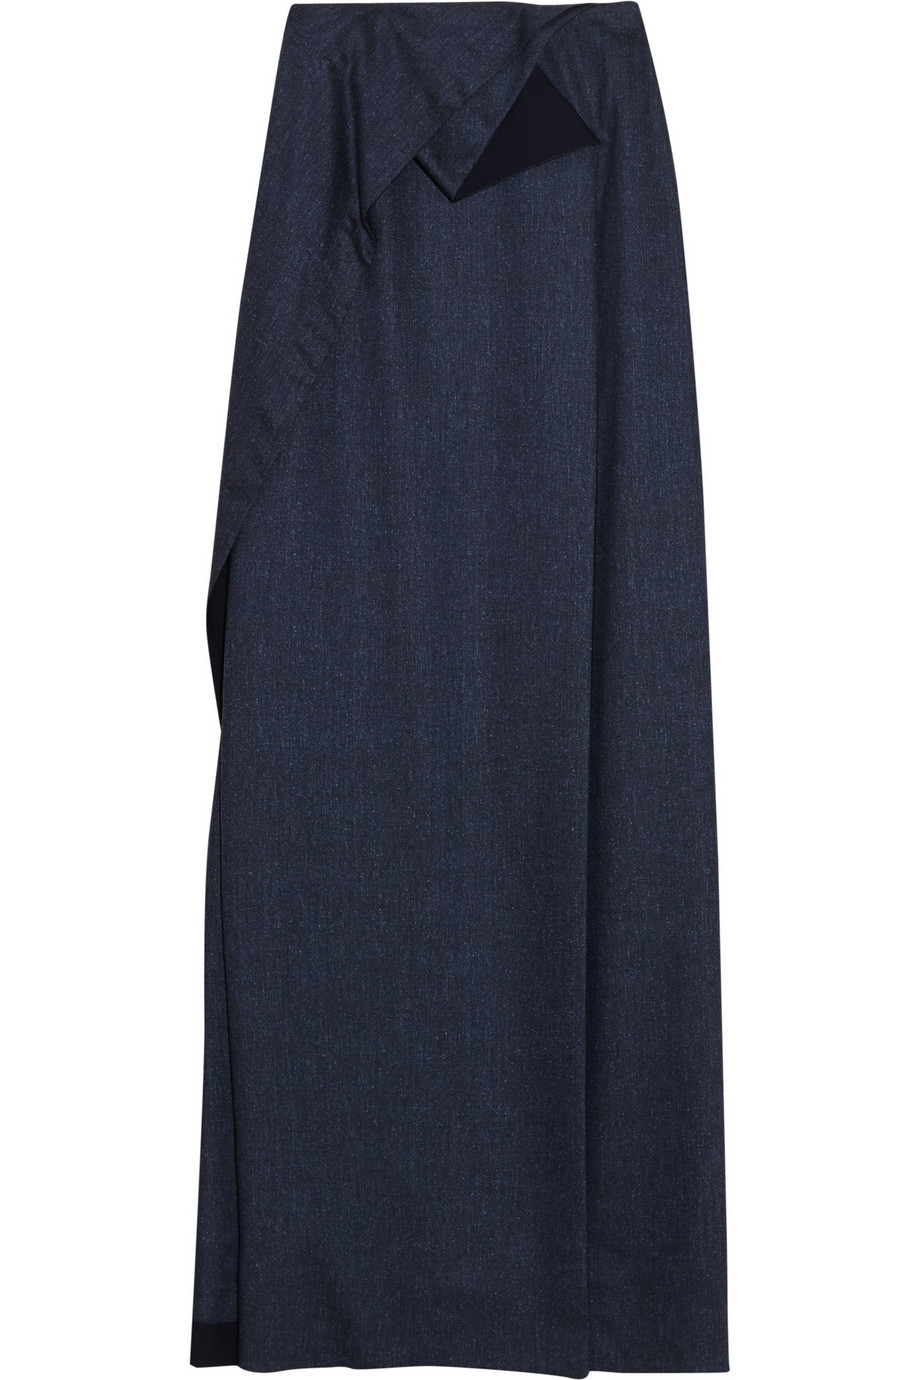 Blend maxi skirt – 70% at the outnet.com